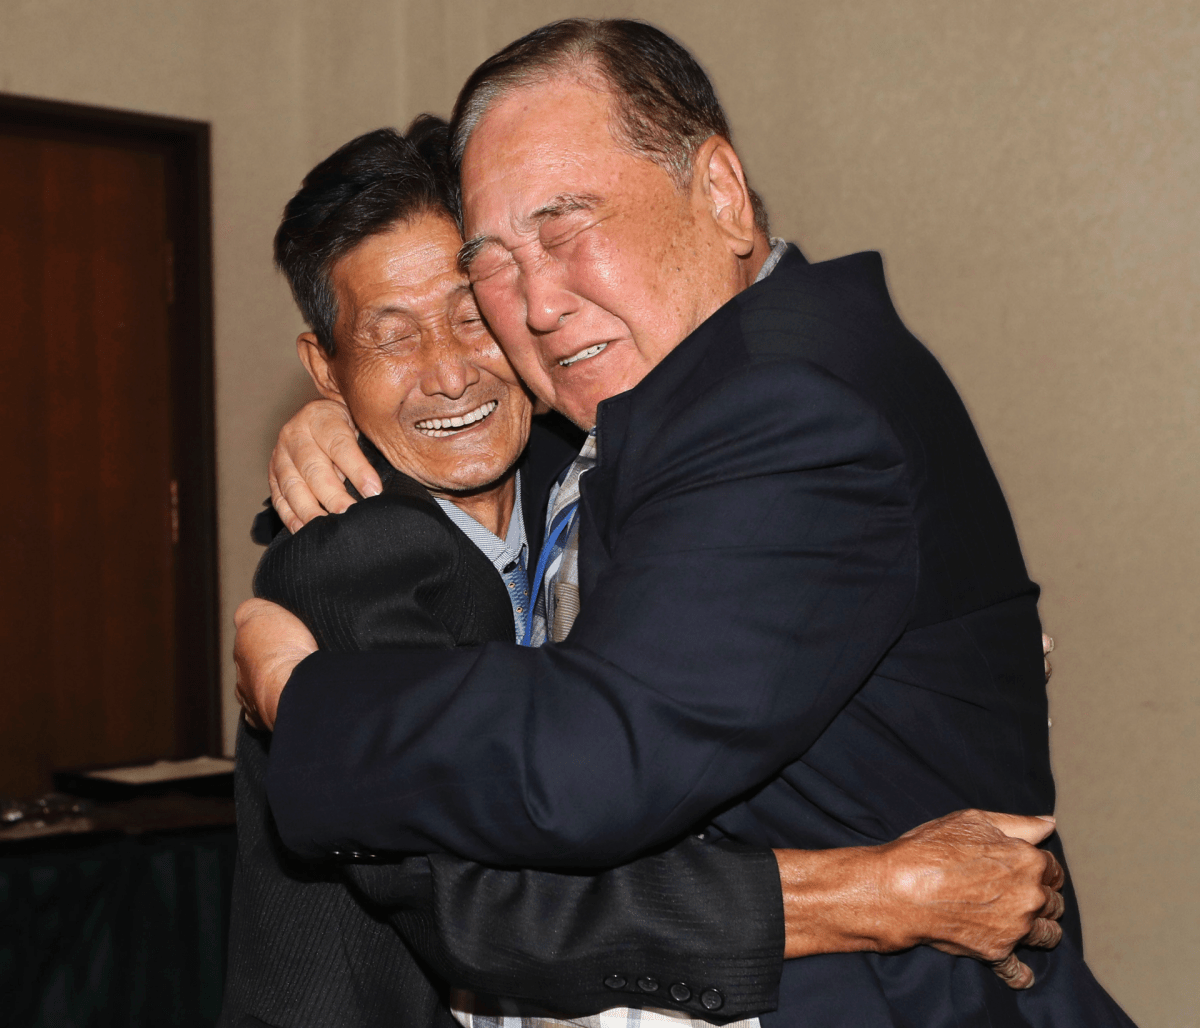 'Way too short:' A 93-year-old meets his N. Korean brother